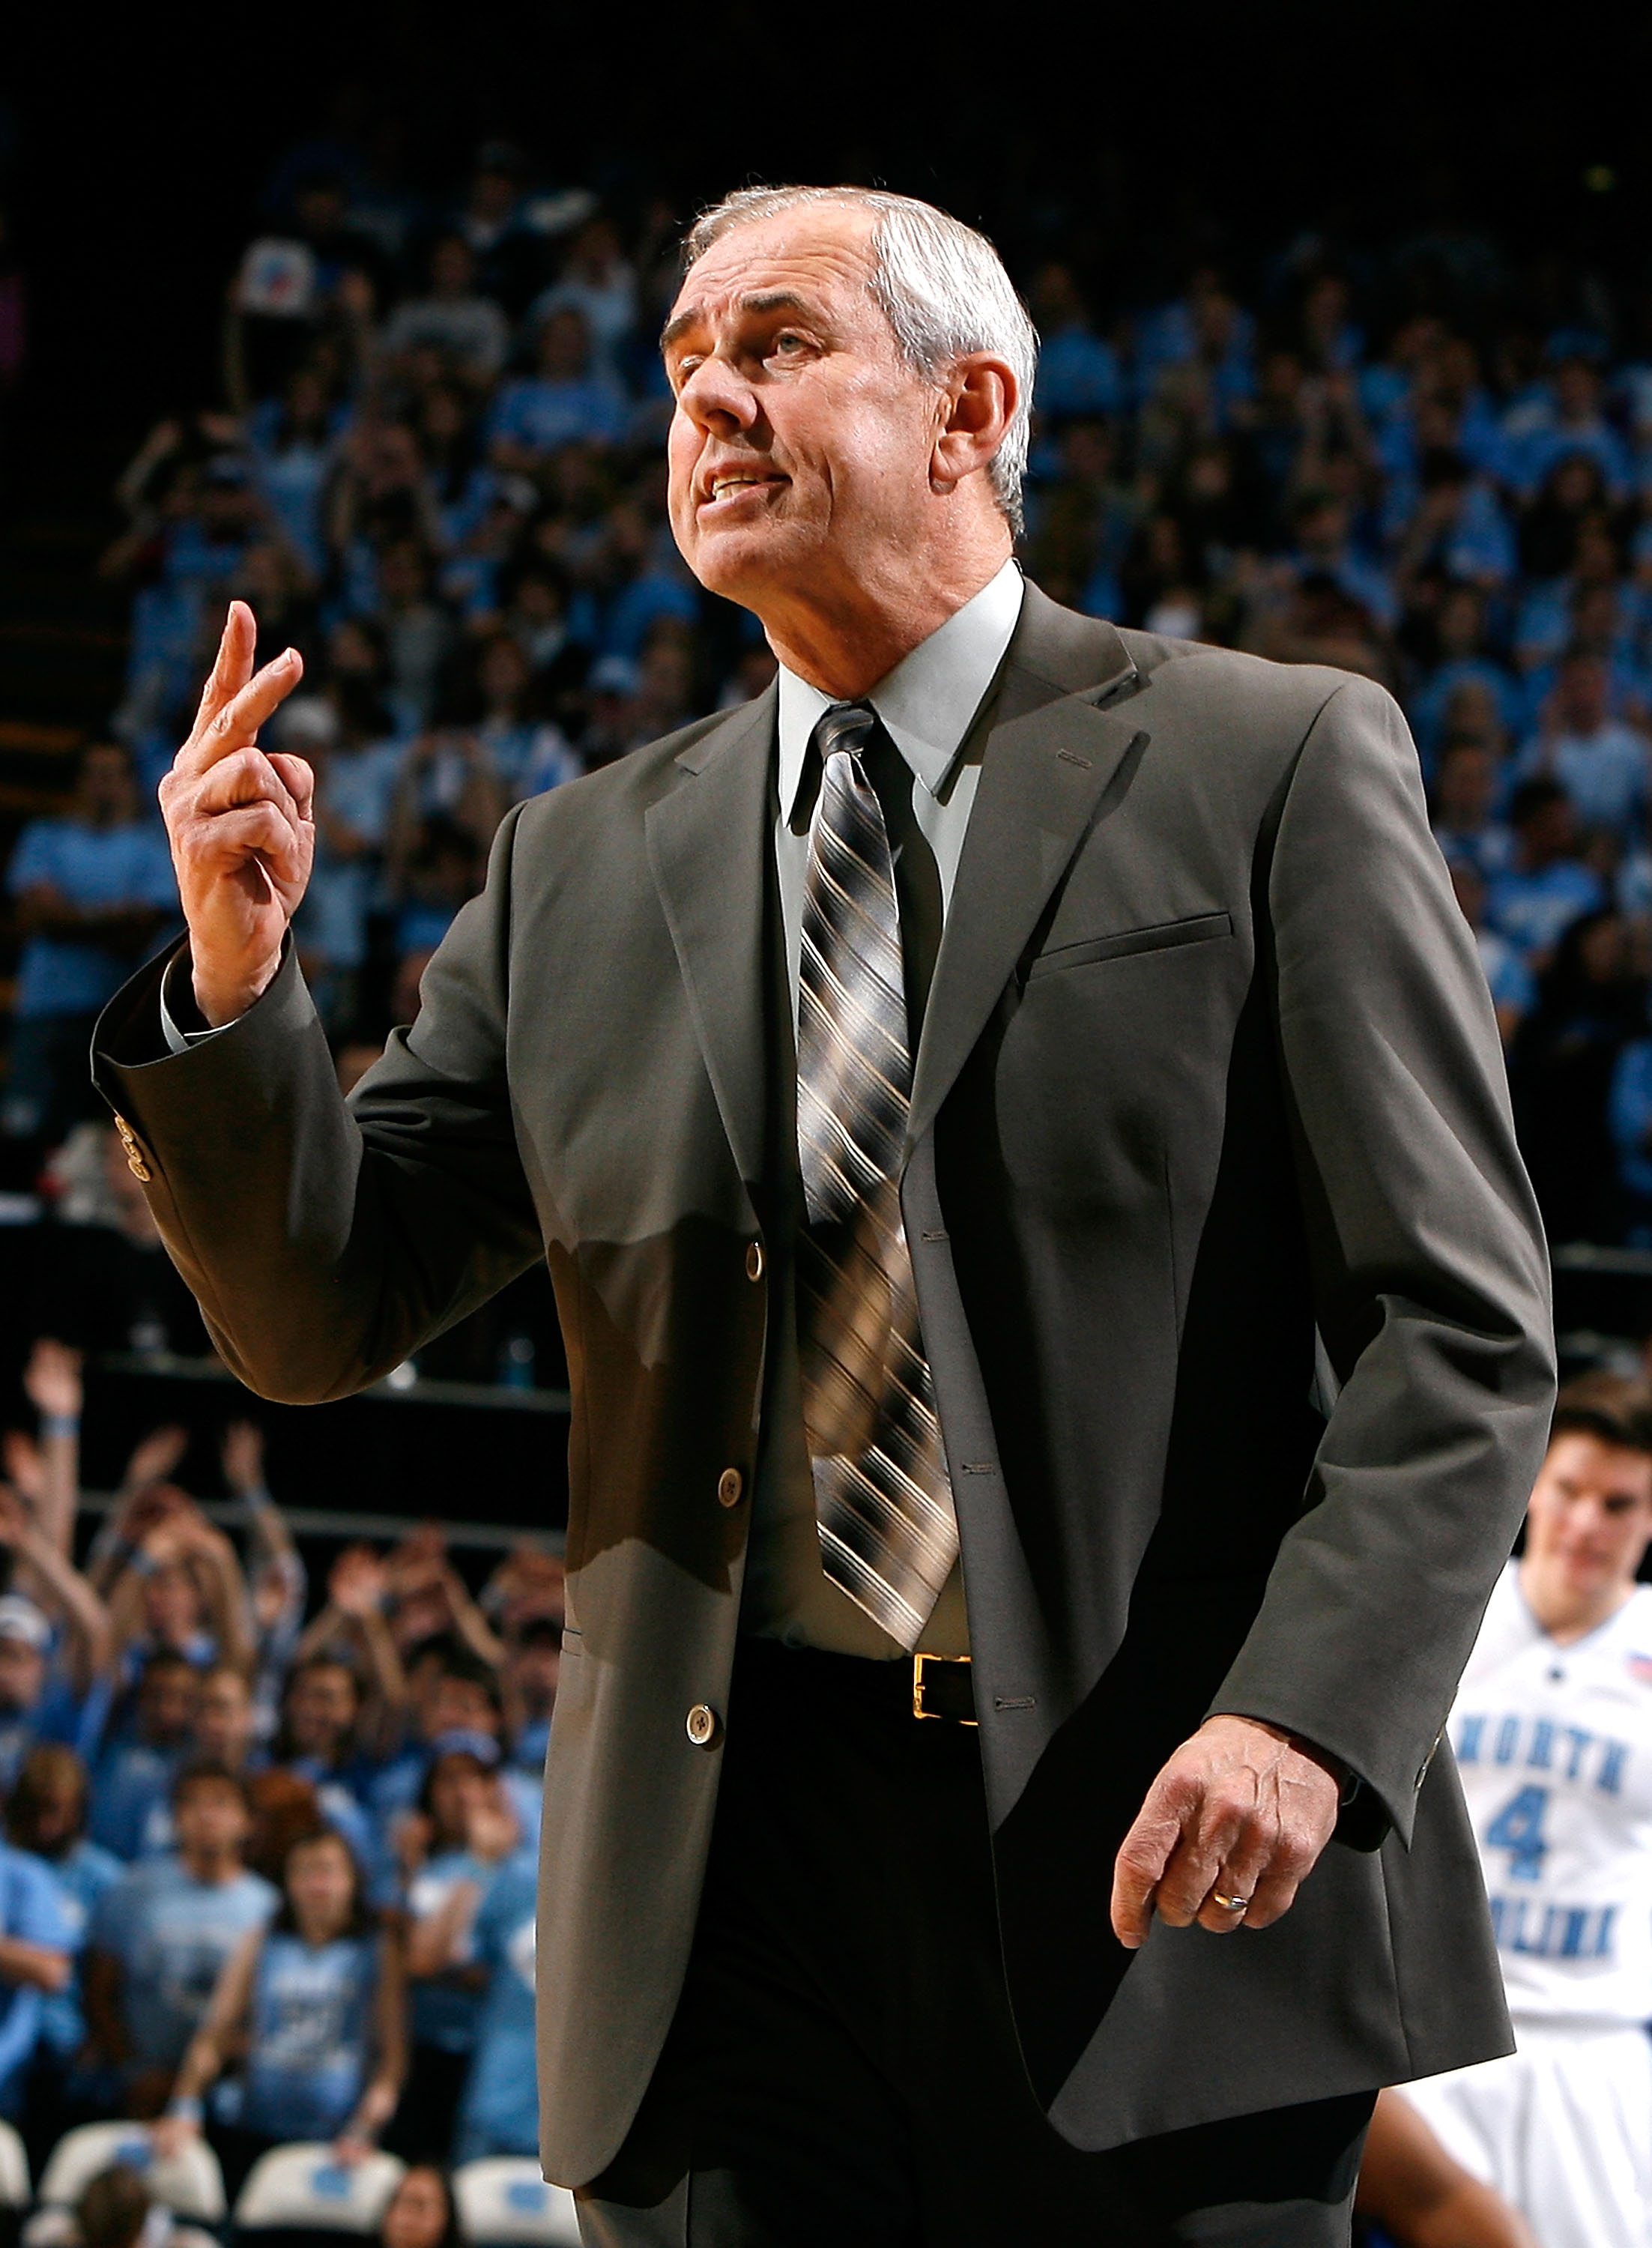 CHAPEL HILL, NC - NOVEMBER 30:  Head coach Eddie Biedenbach of the UNC Asheville Bulldogs argues with an official during the game against the North Carolina Tar Heels at the Dean E. Smith Center on November 30, 2008 in Chapel Hill, North Carolina.  (Photo